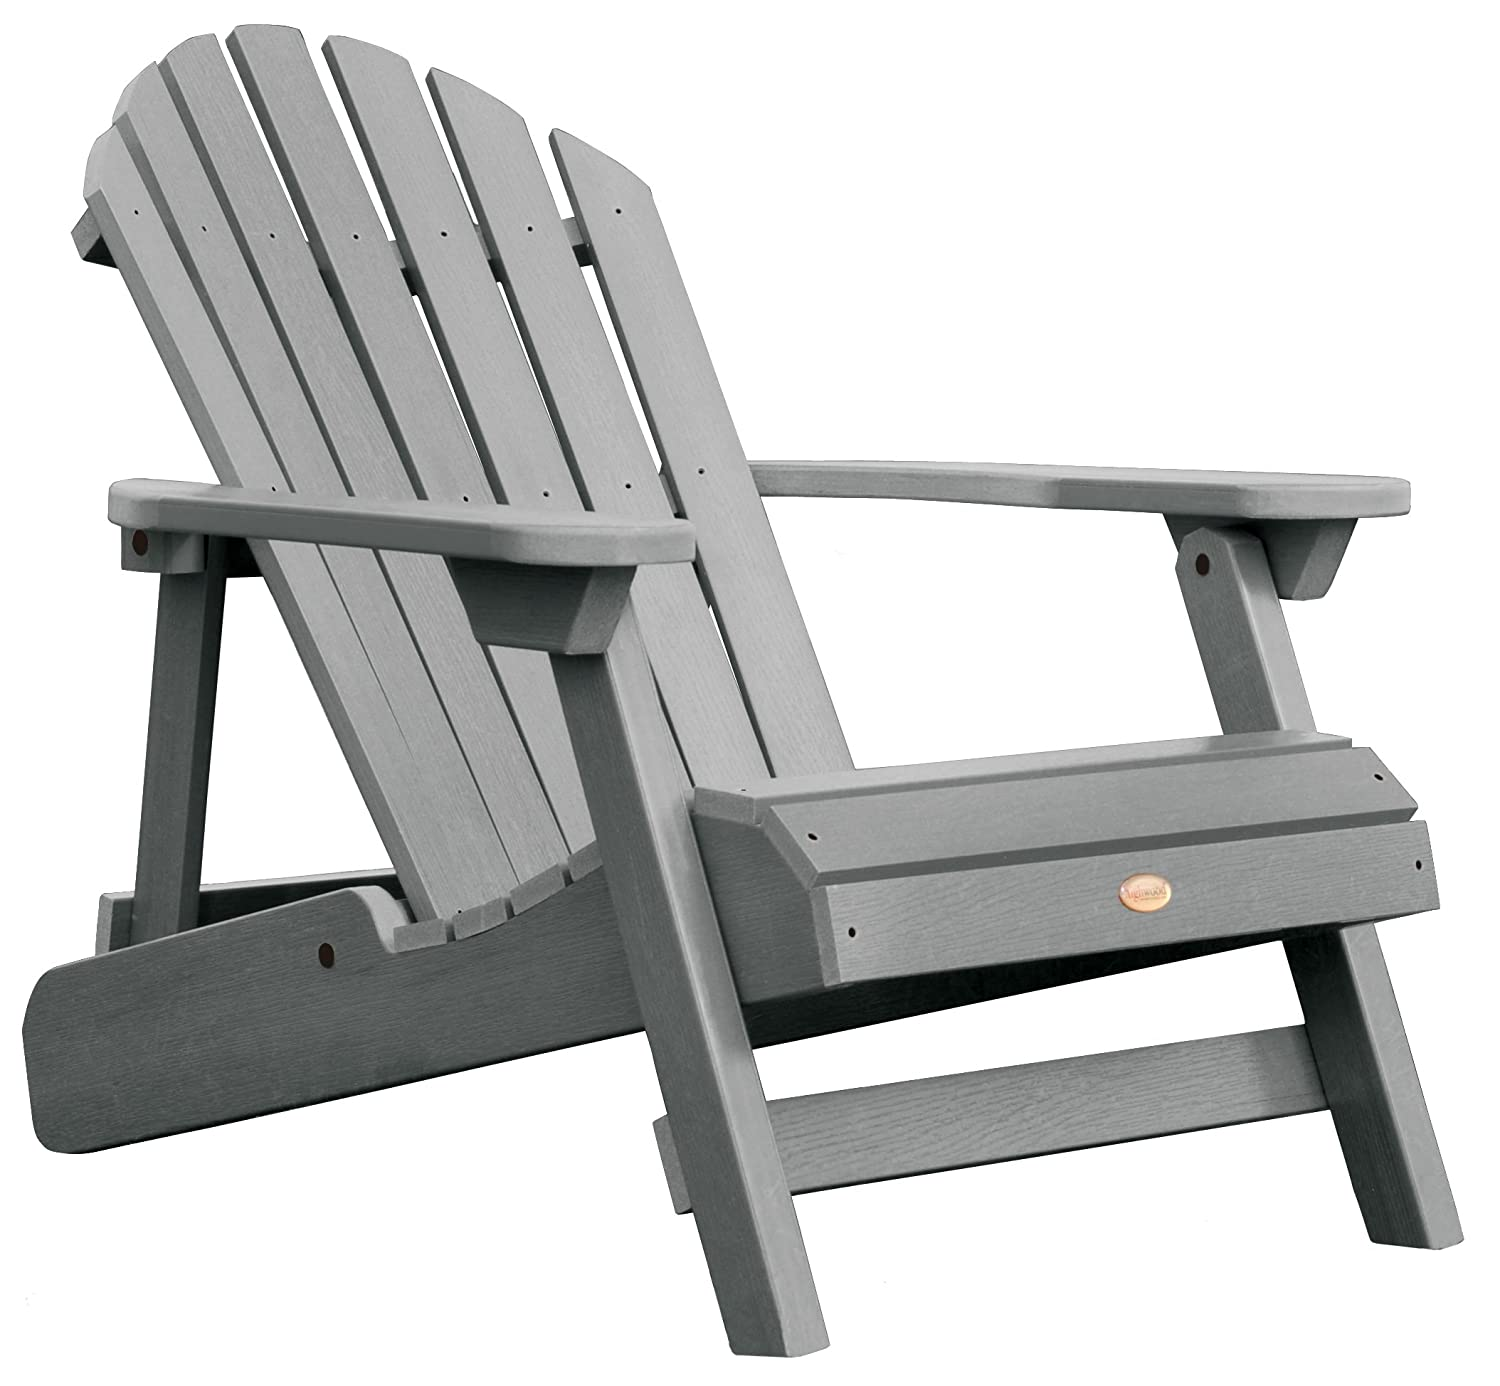 Amazon.com  Highwood Hamilton Folding and Reclining Adirondack Chair Adult Size Coastal Teak  Garden u0026 Outdoor  sc 1 st  Amazon.com & Amazon.com : Highwood Hamilton Folding and Reclining Adirondack ... islam-shia.org